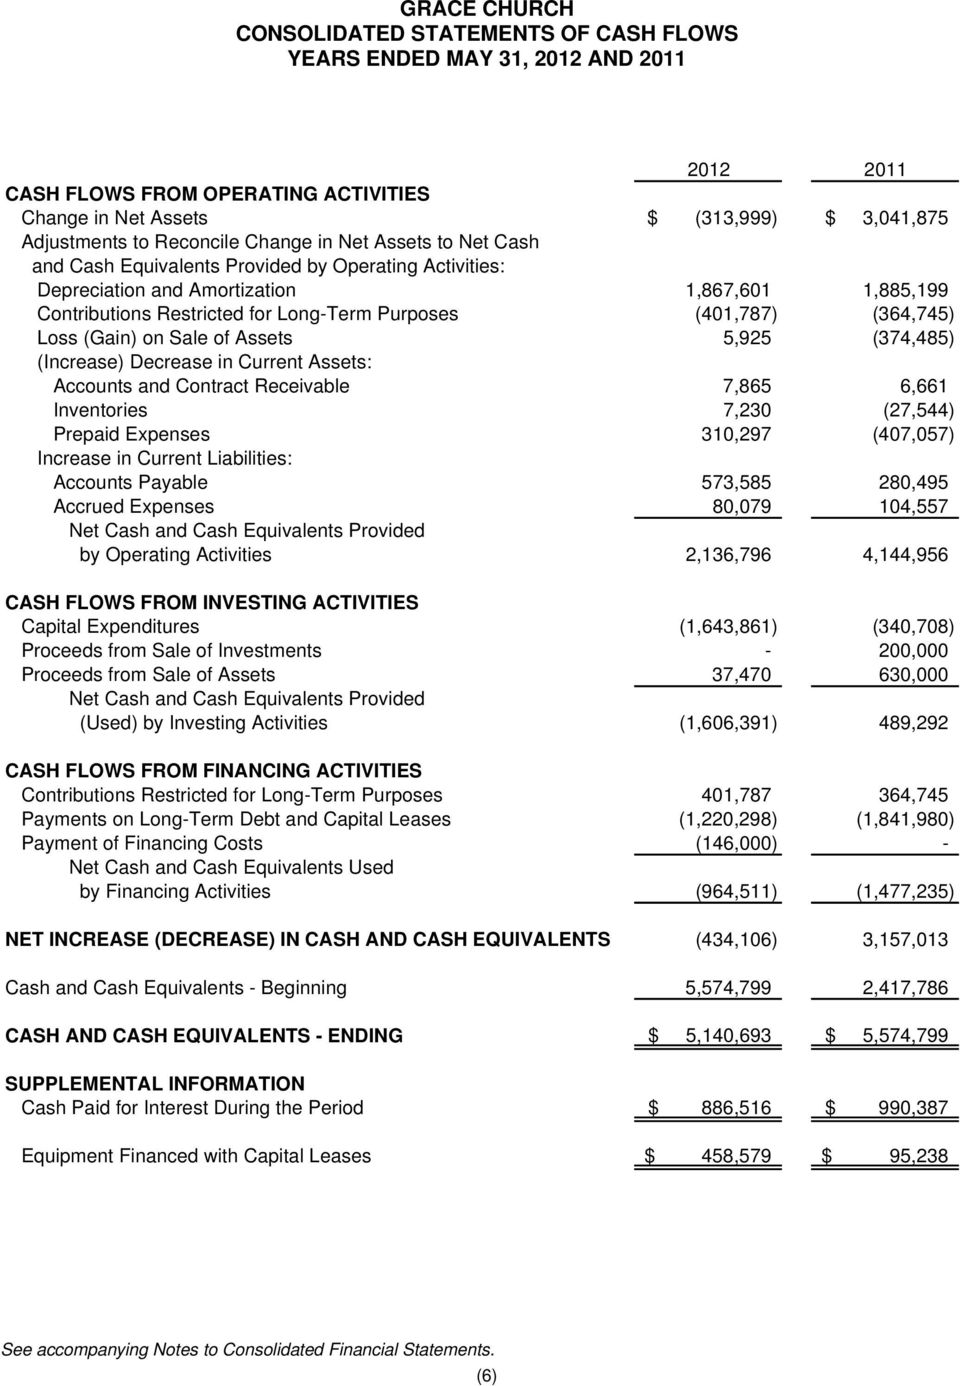 Loss (Gain) on Sale of Assets 5,925 (374,485) (Increase) Decrease in Current Assets: Accounts and Contract Receivable 7,865 6,661 Inventories 7,230 (27,544) Prepaid Expenses 310,297 (407,057)